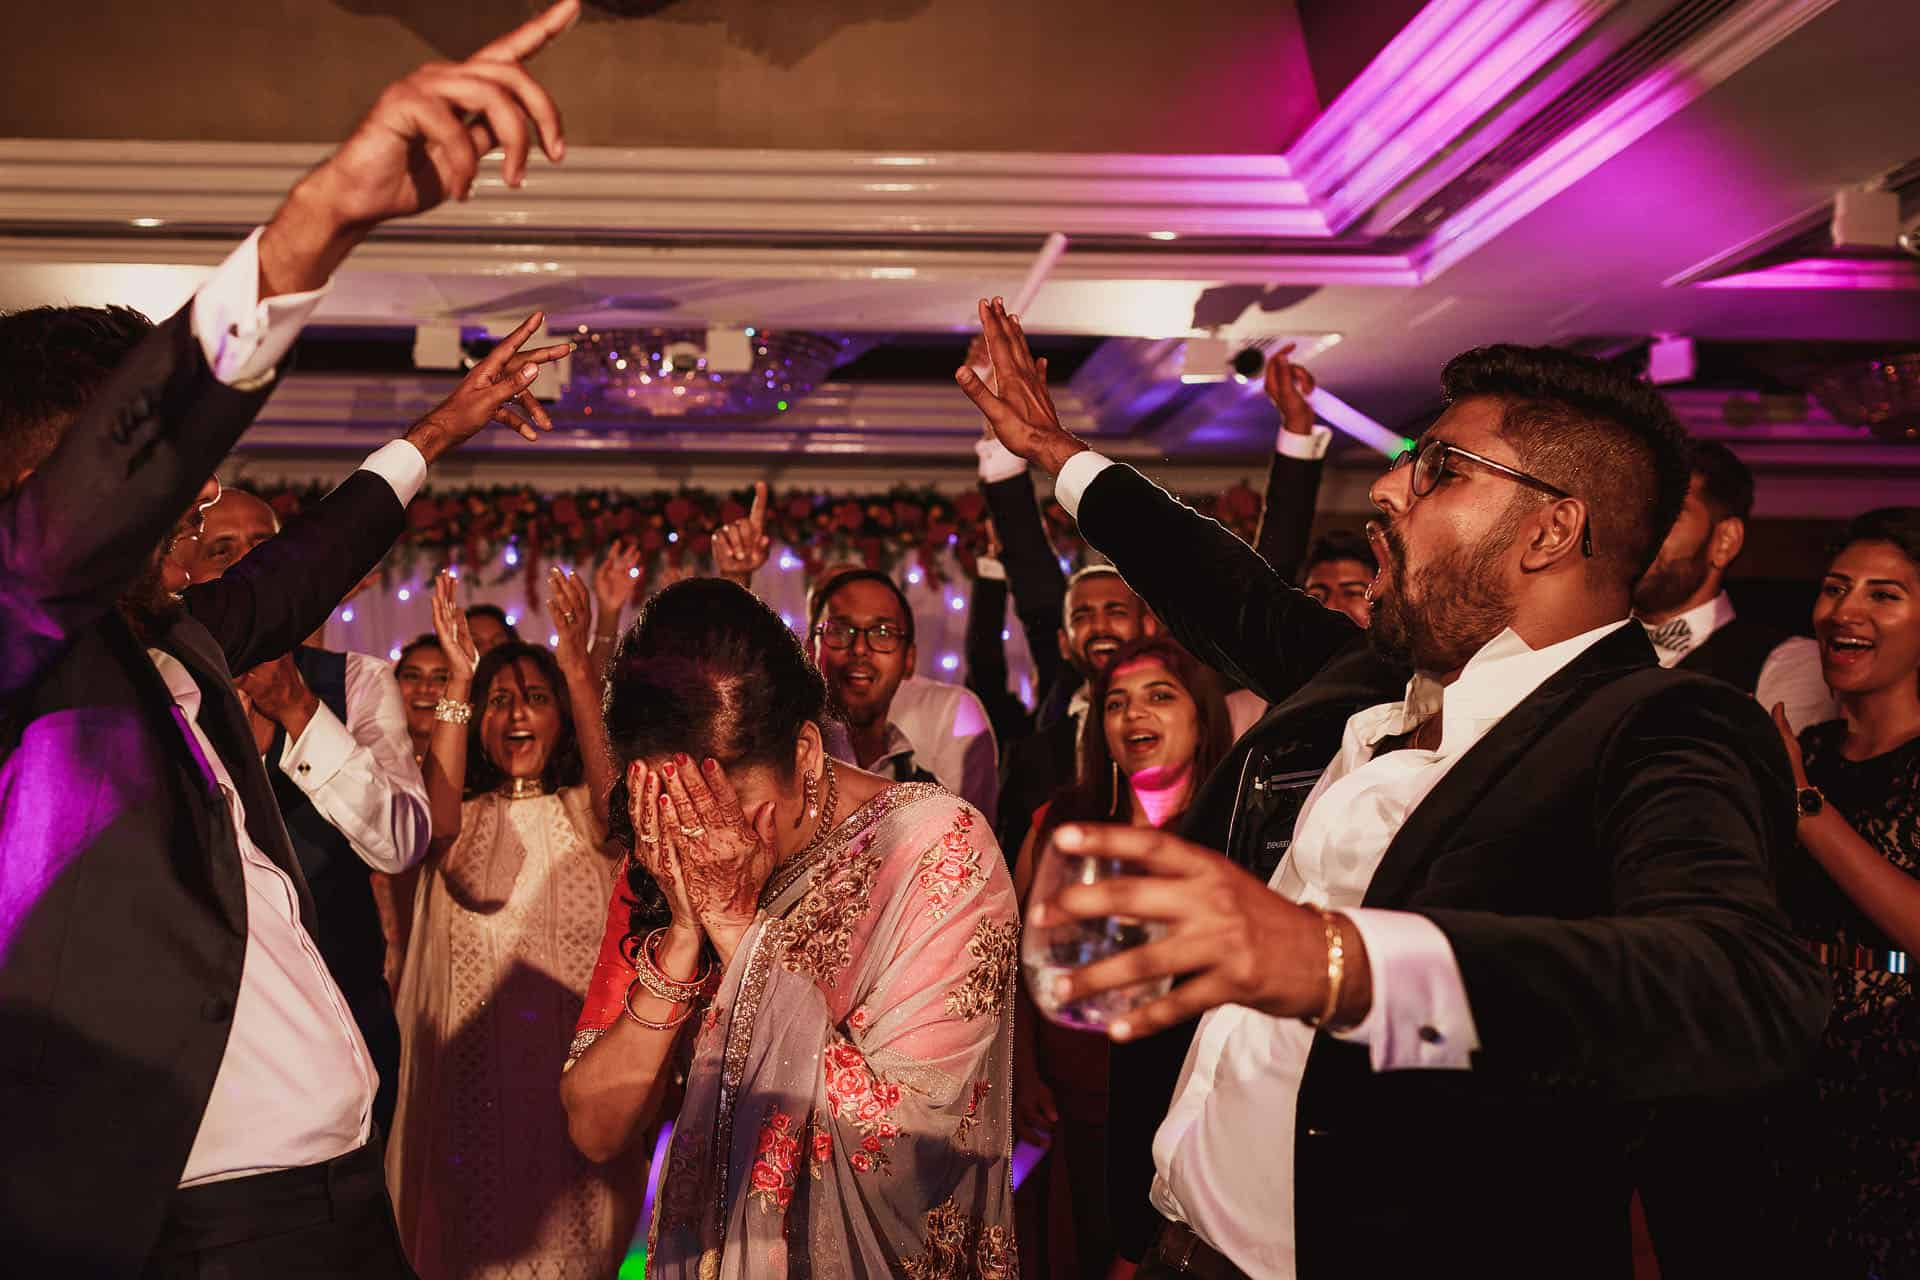 jumeirah carlton tower hindu wedding reception